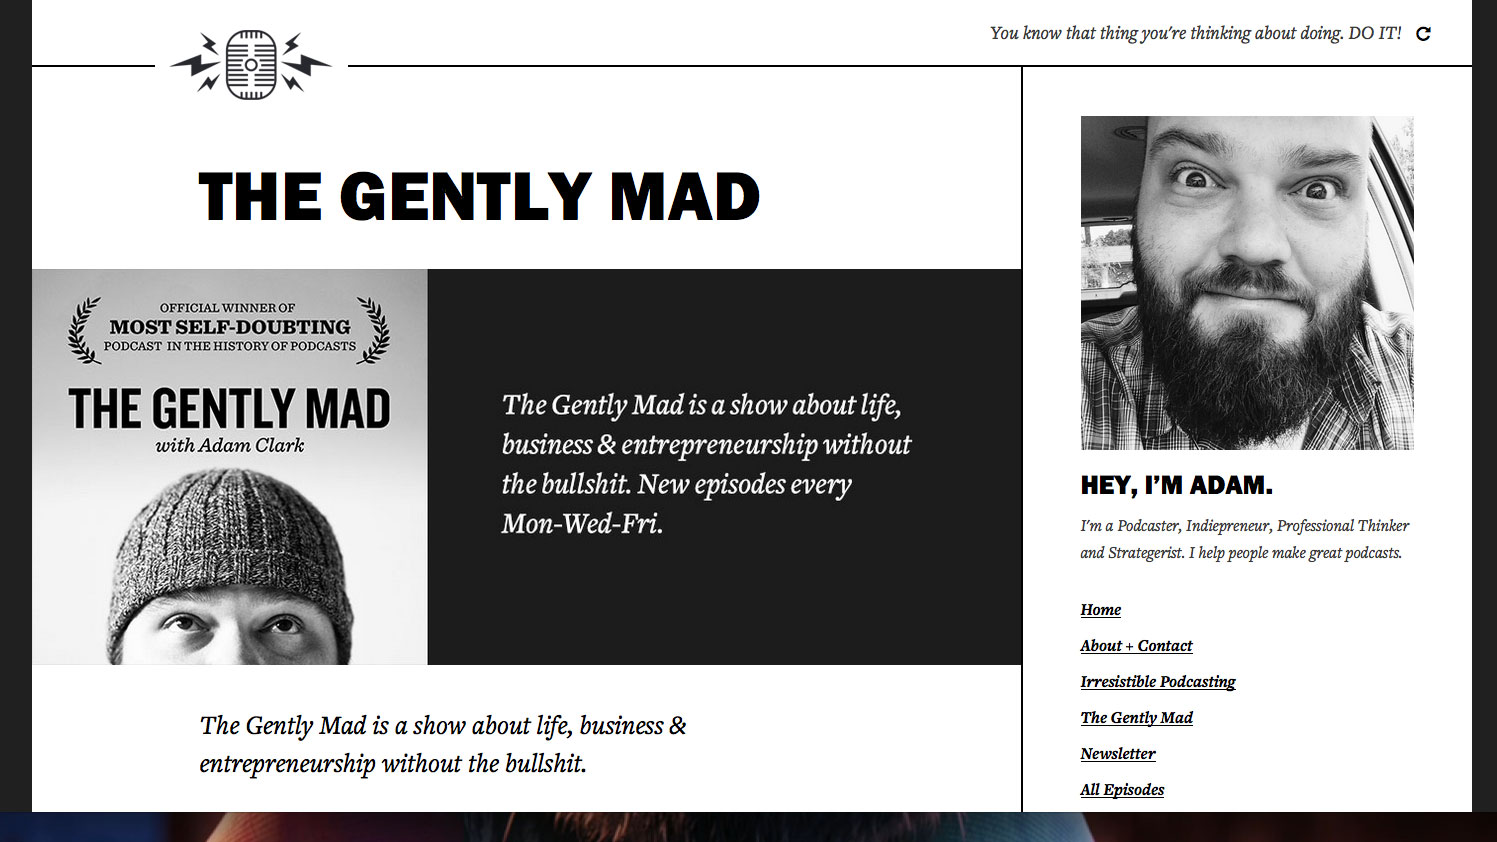 Web design inspiration: The Gently Mad